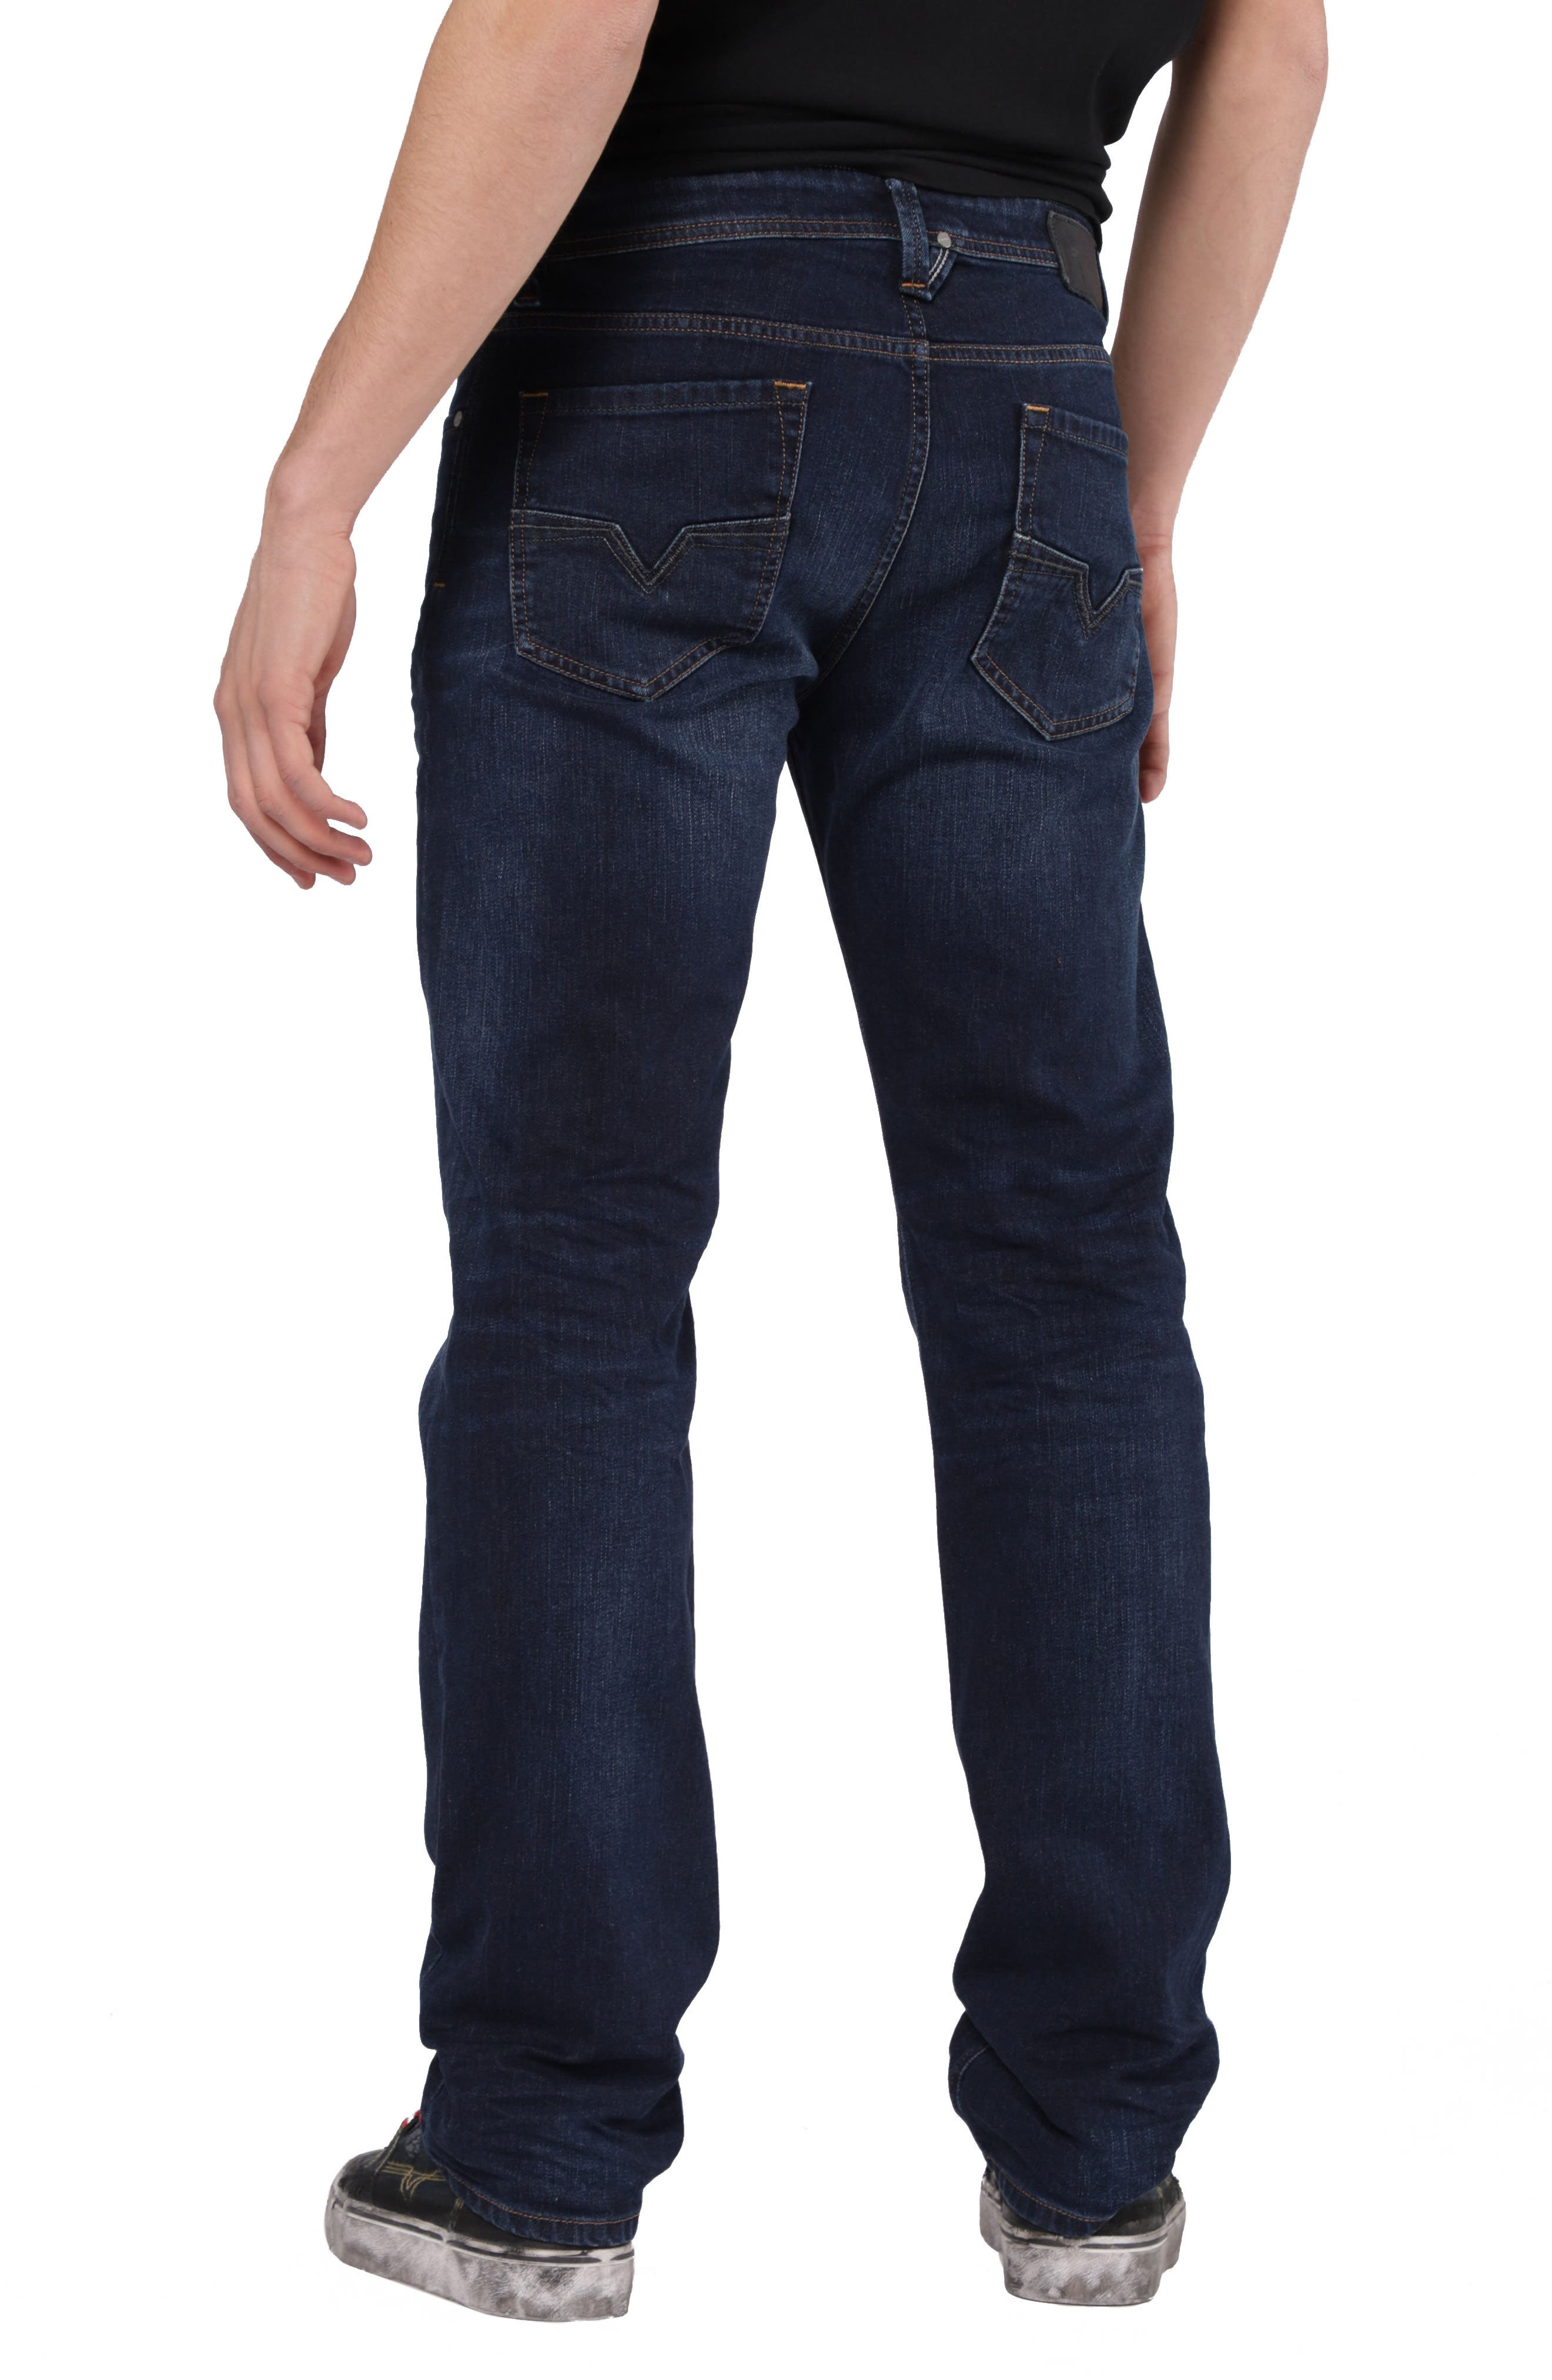 Larkee Relaxed Fit Jeans,                             Alternate thumbnail 2, color,                             084VG